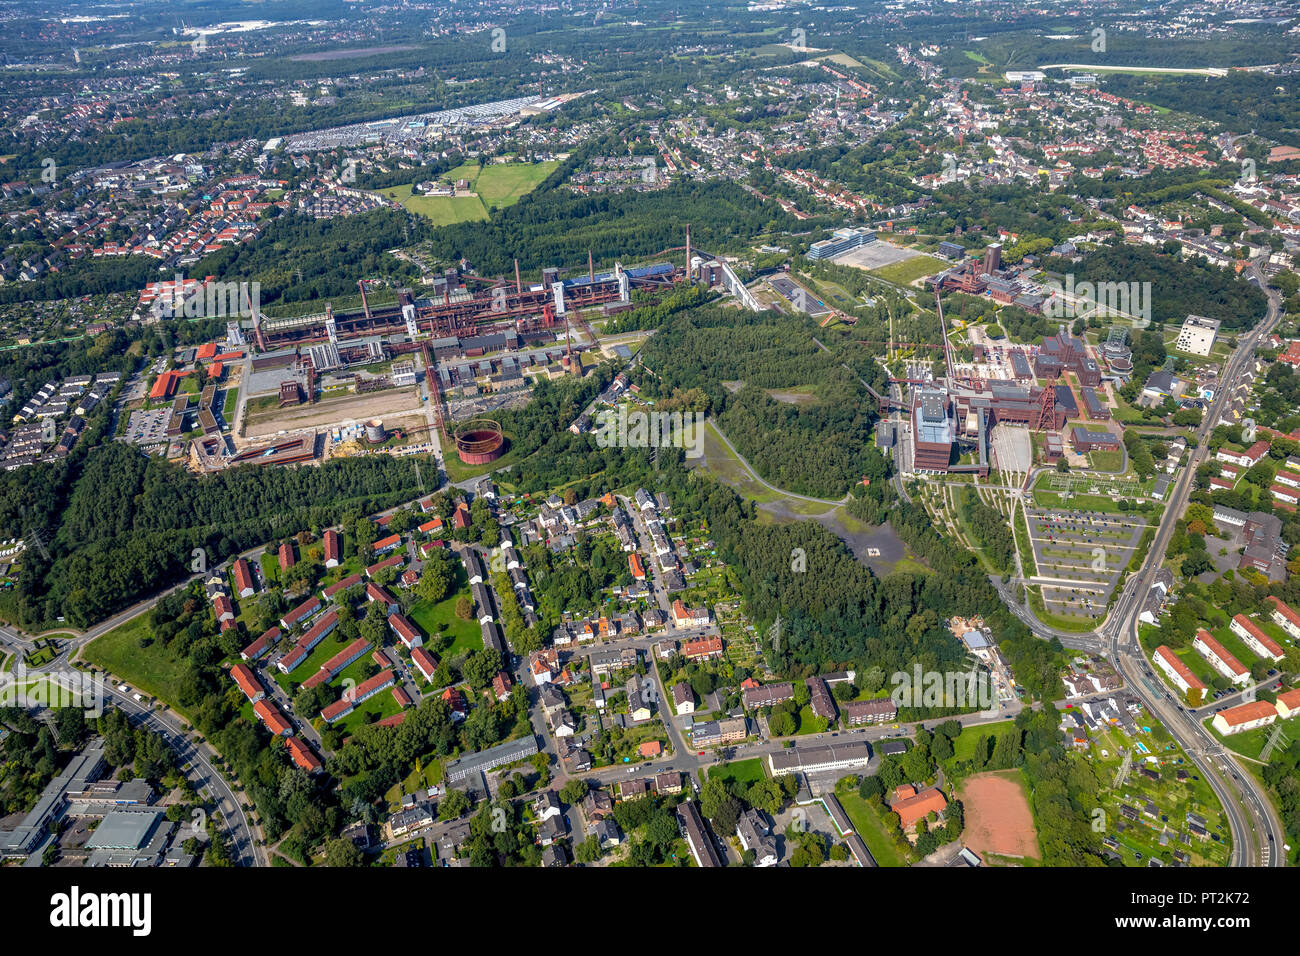 Zollverein Essen-Katernberg, Essen, North Rhine-Westphalia, Germany - Stock Image